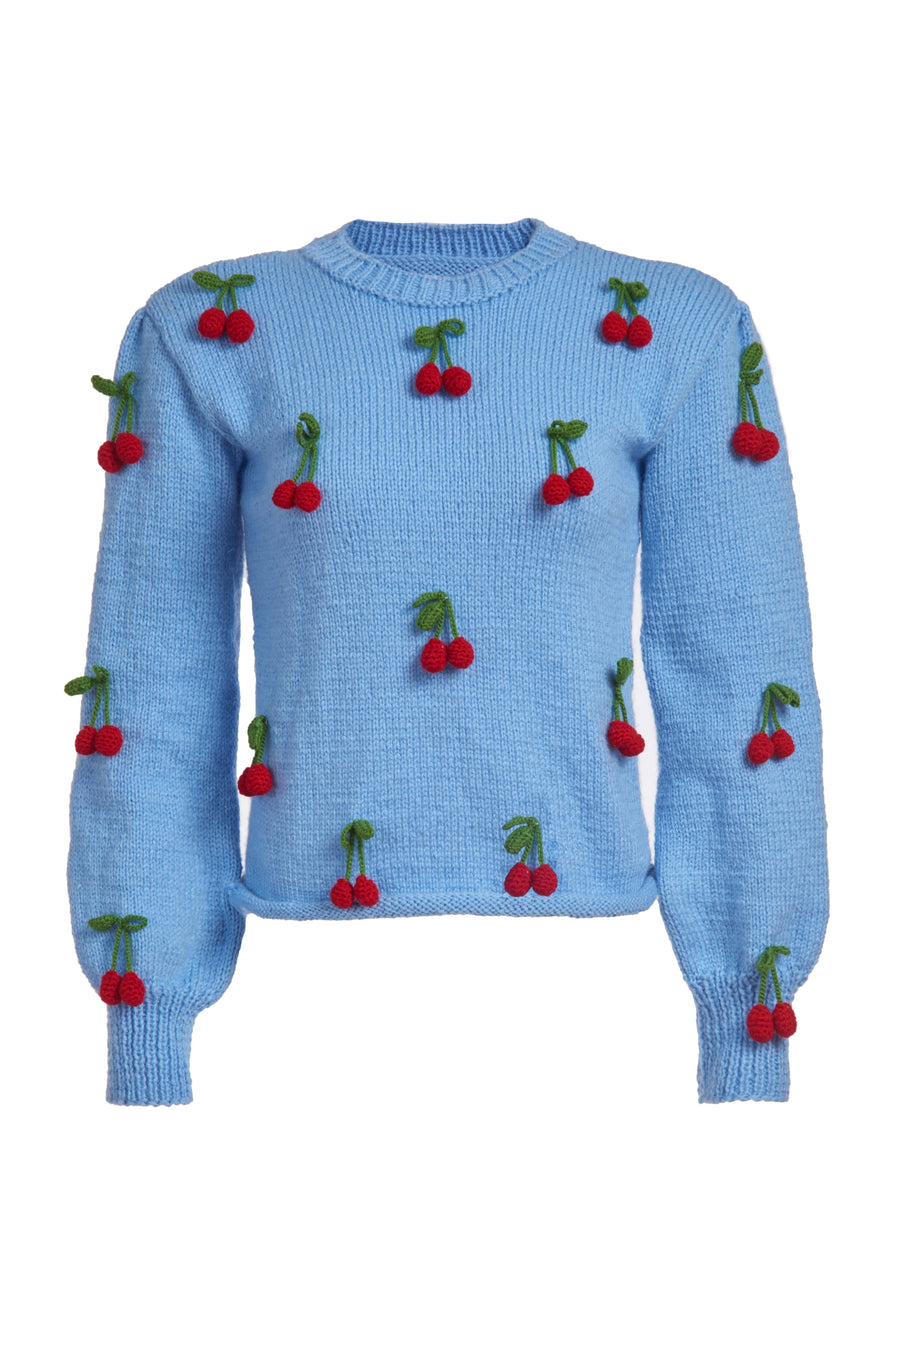 Cherries Knit Sweater